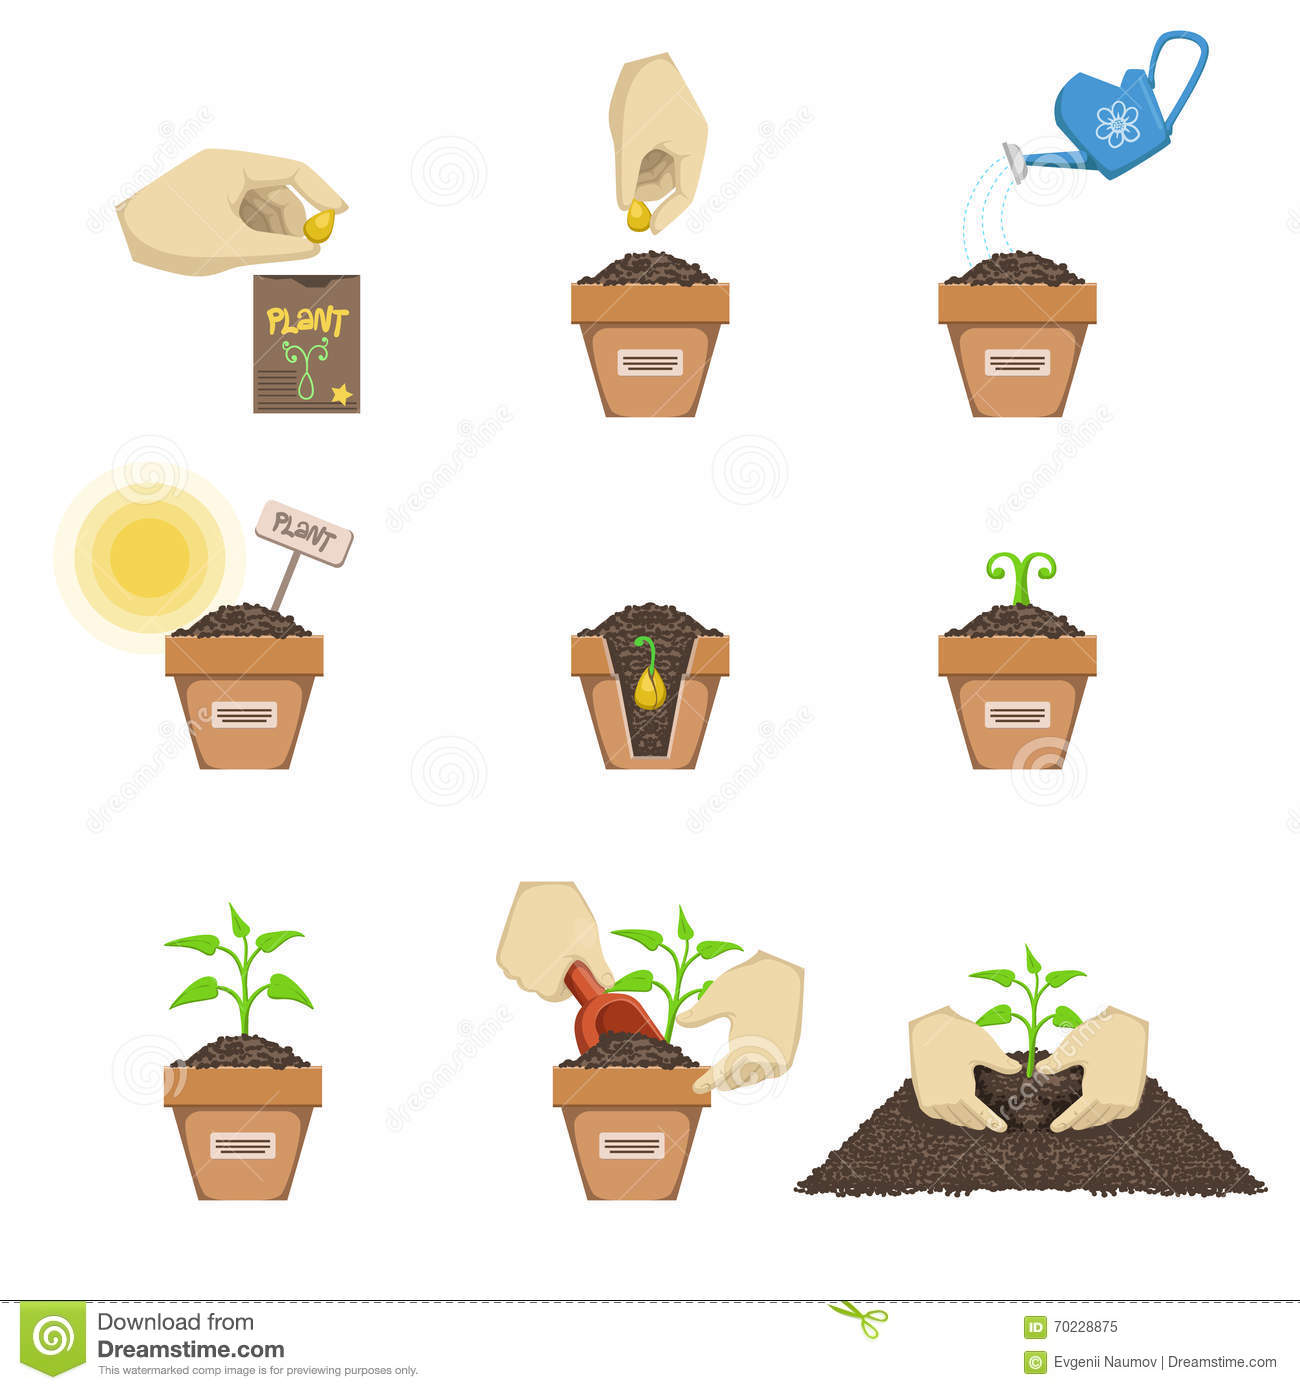 Planting The Seed Sequence Cartoon Vector